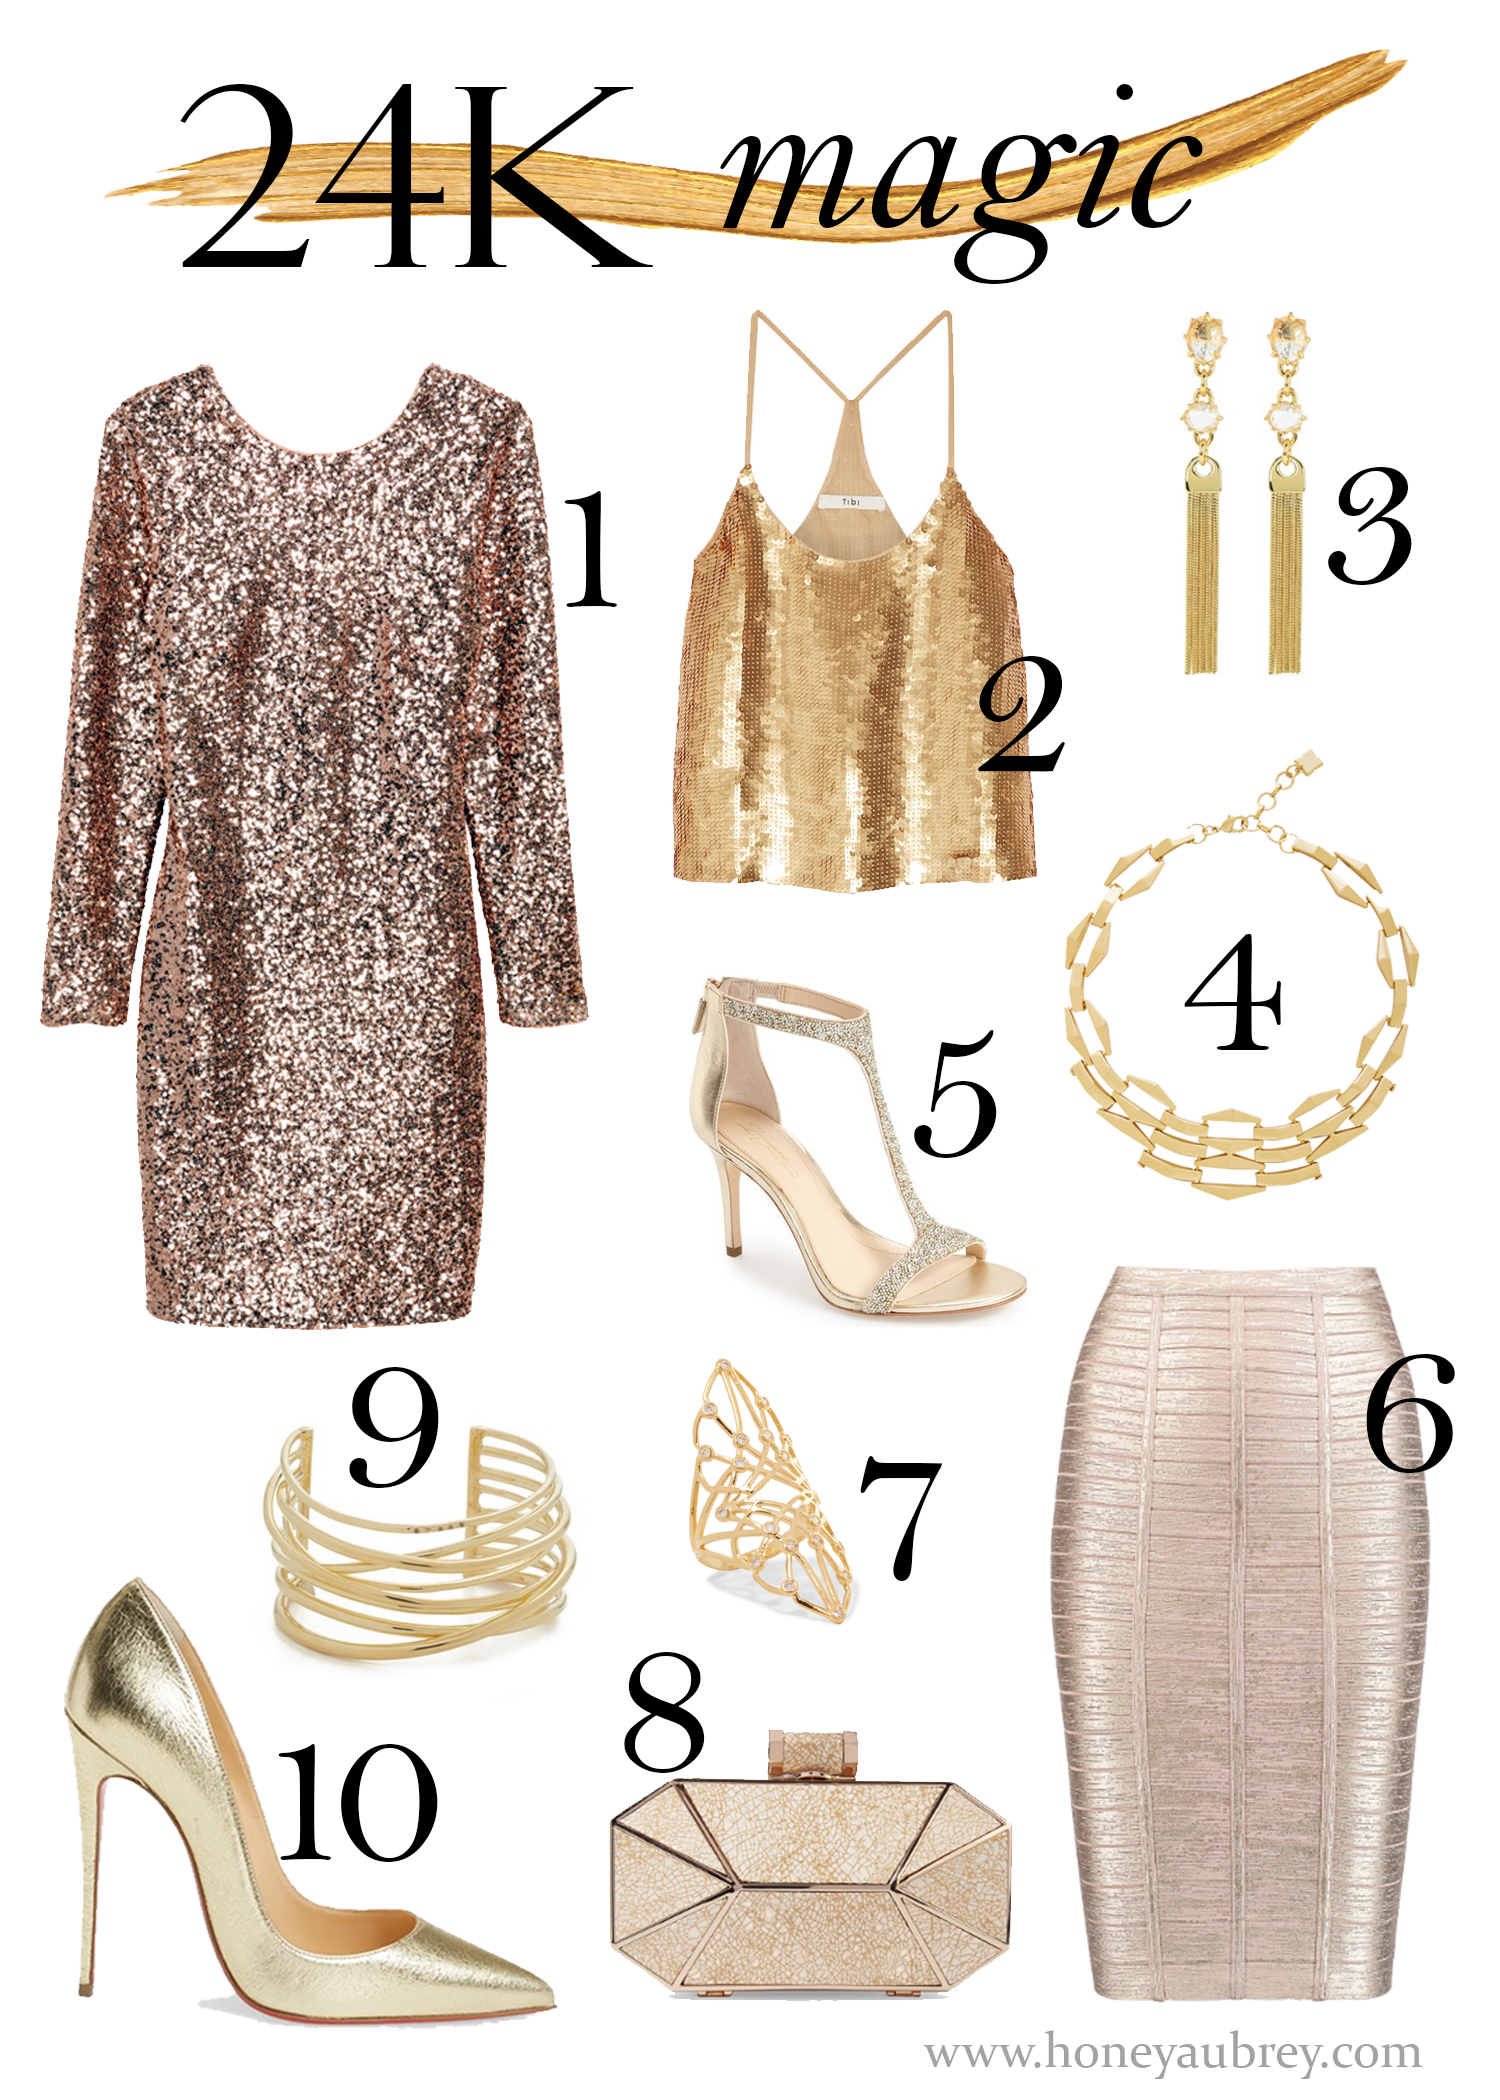 24karat_goldfashion_inpirationboard